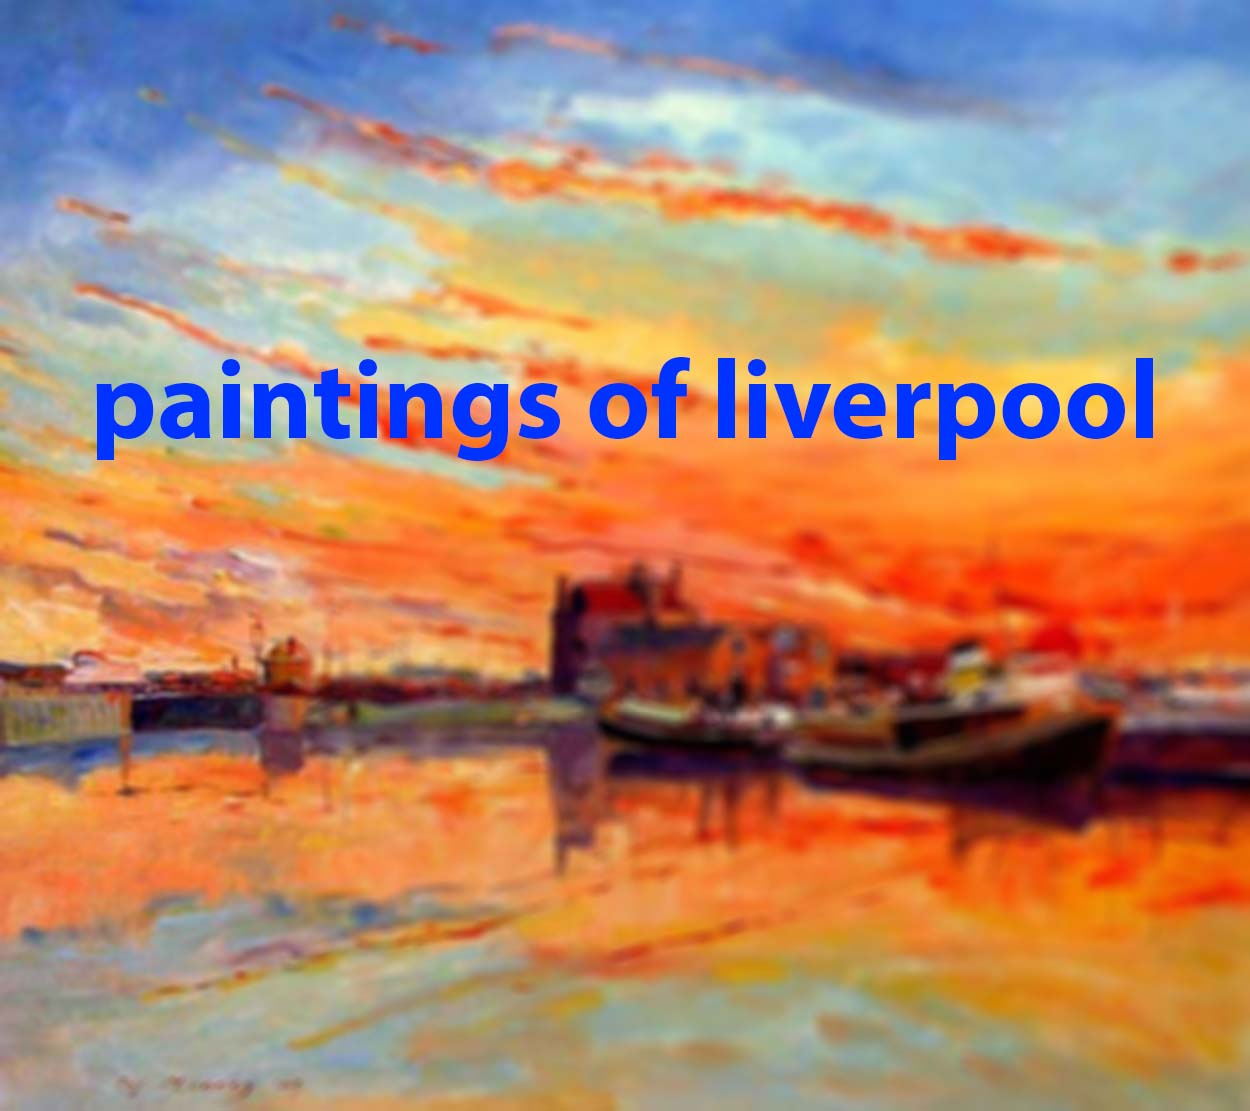 buy paintings of liverpool, prints of liverpool, paintings, liverpool, 3 graces, river merseyside, buy, painting